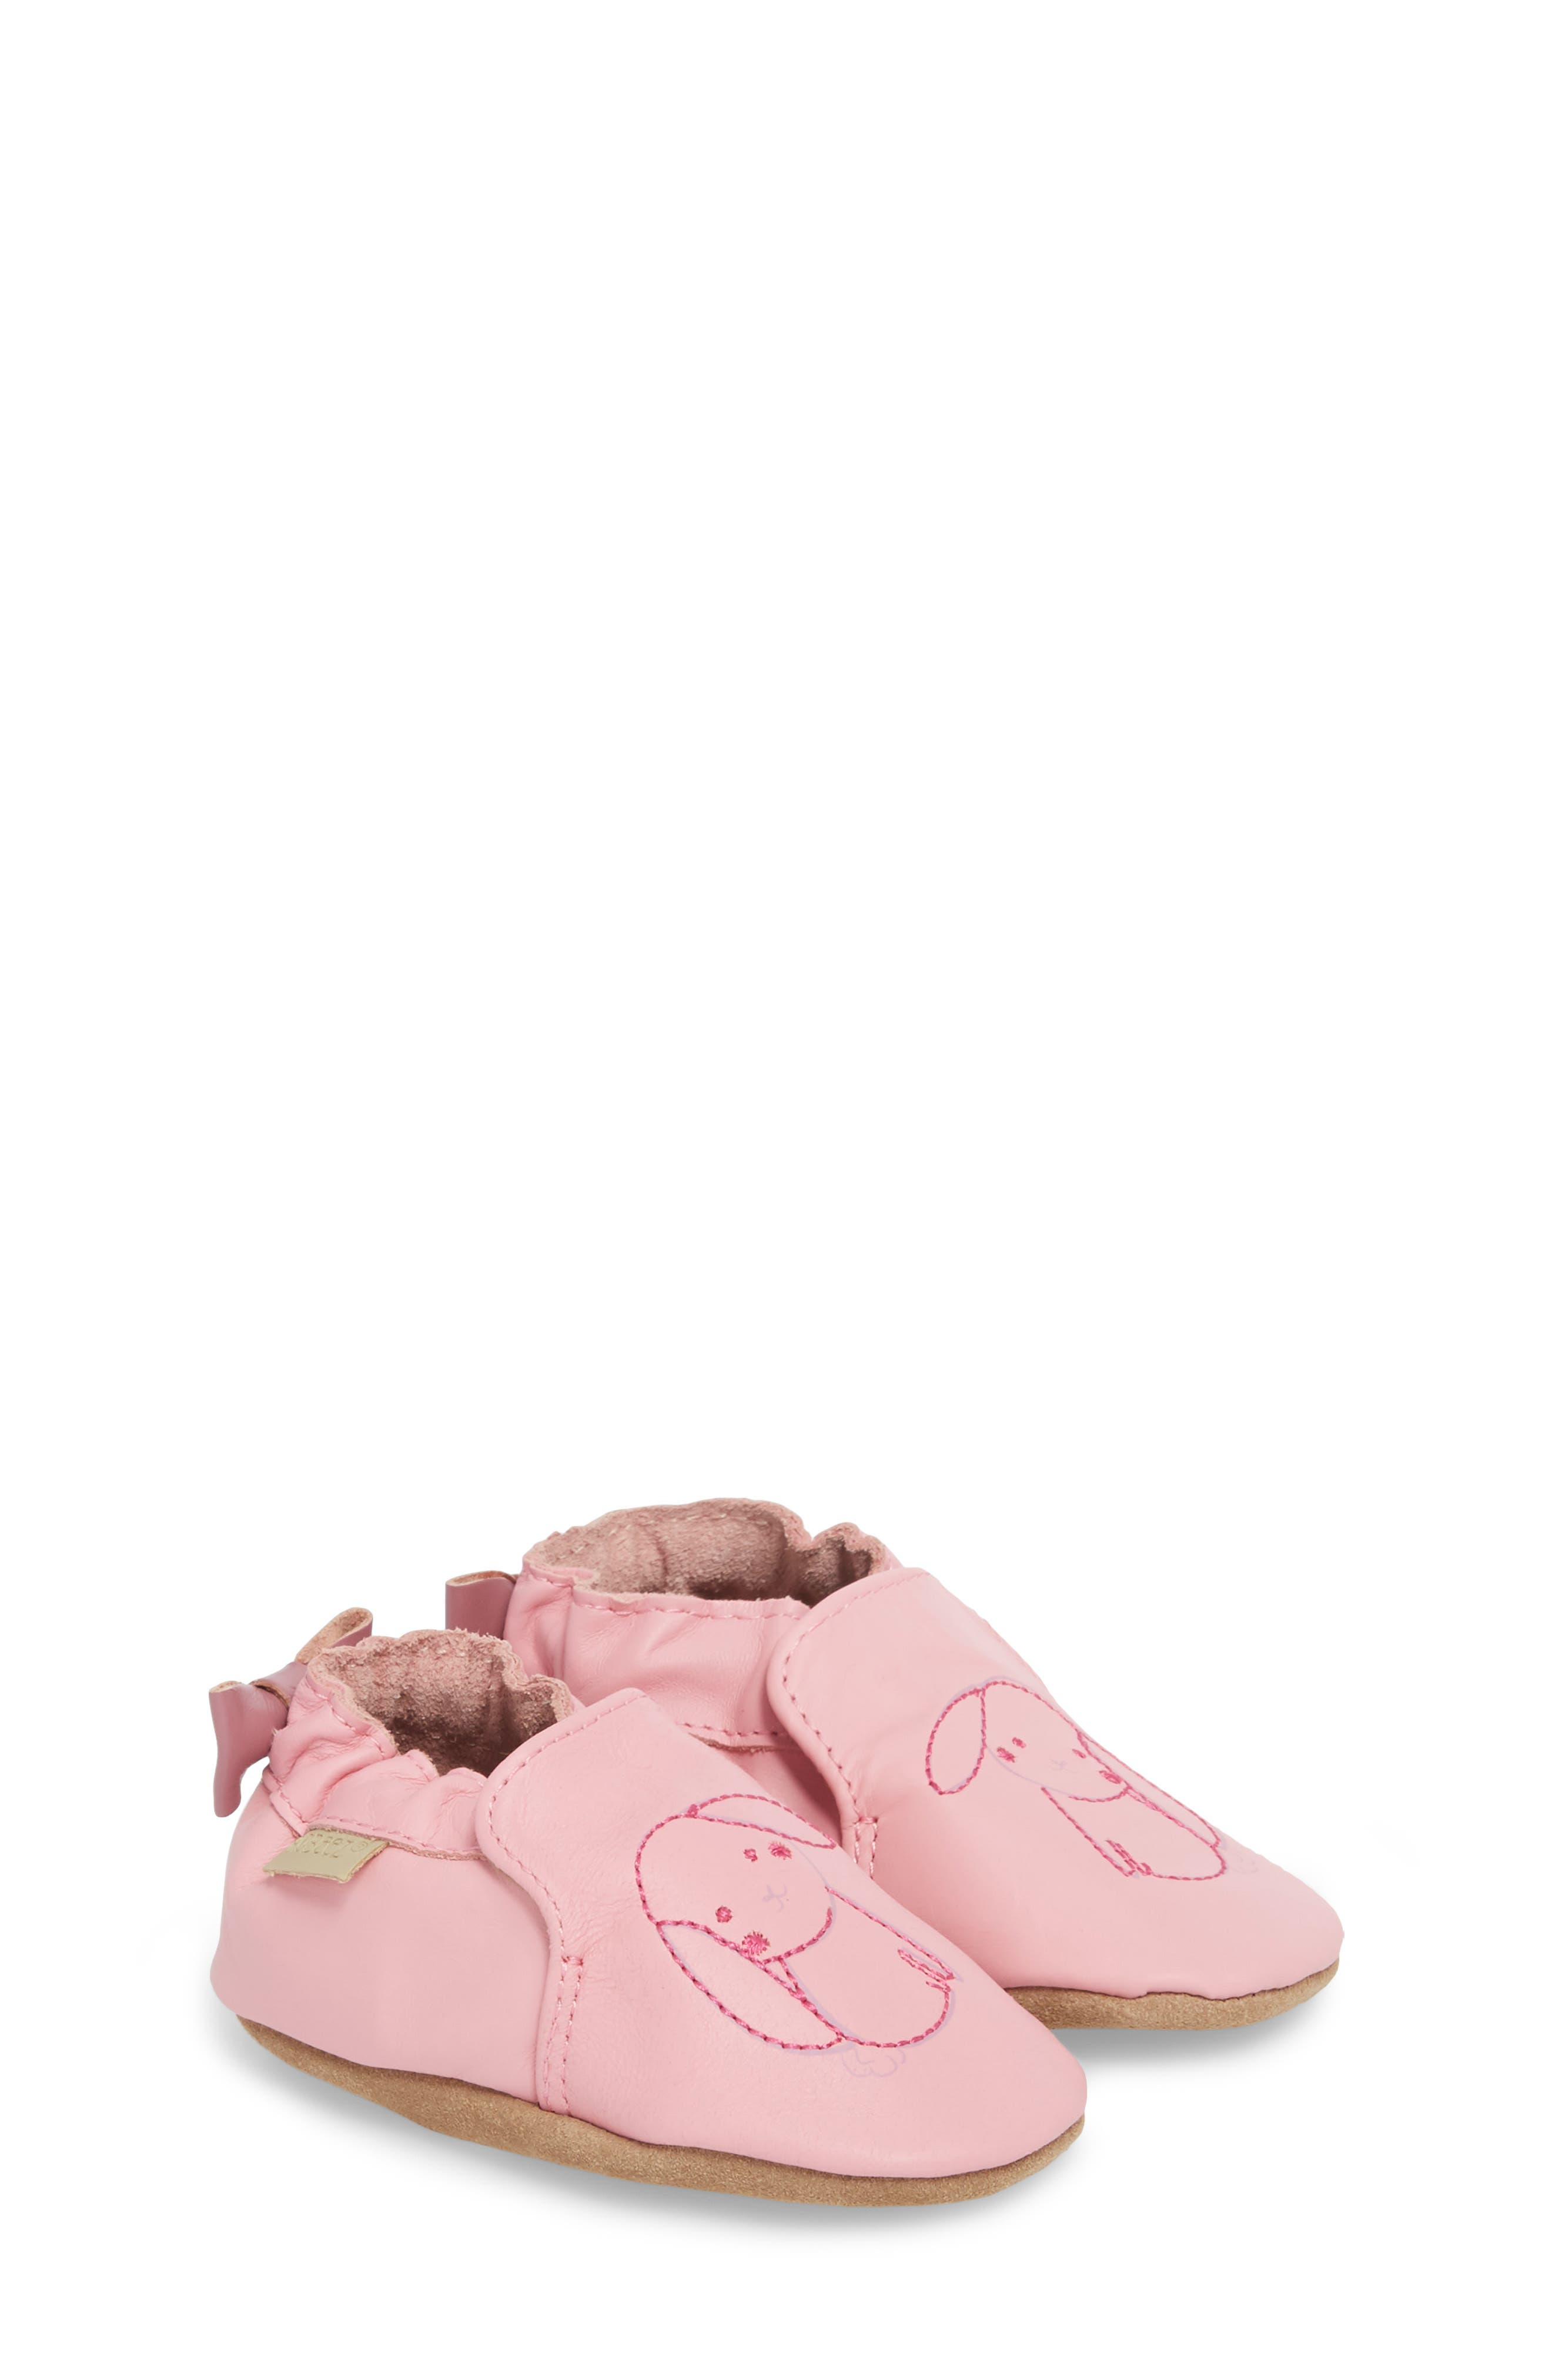 Sweet Bunny Moccasin Crib Shoe,                         Main,                         color, PASTEL PINK